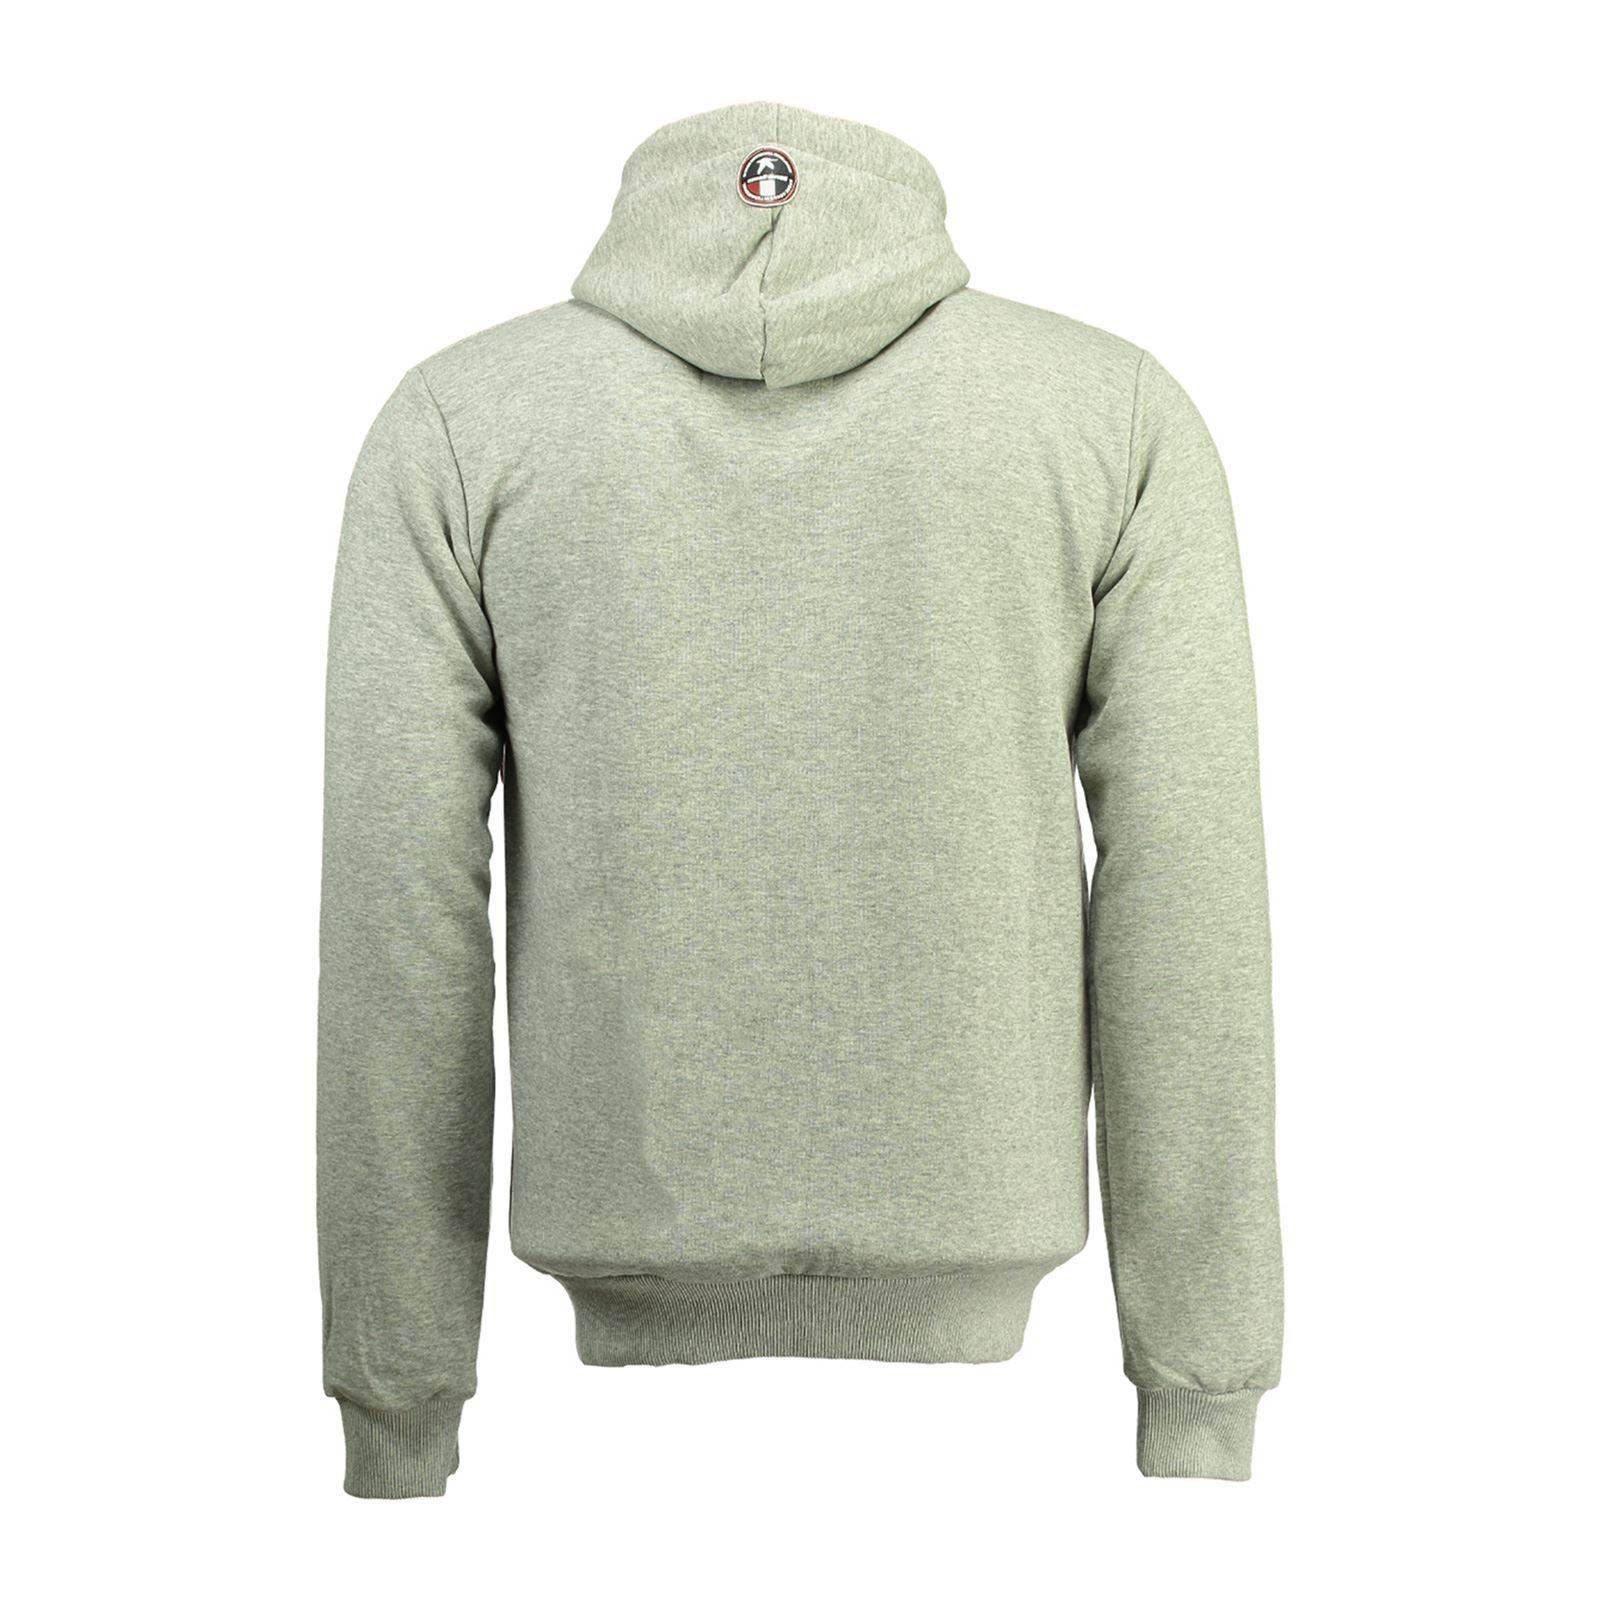 Clair Gris Stonegoose Capuche FagooseSweat V a Homme ymN08Onwv